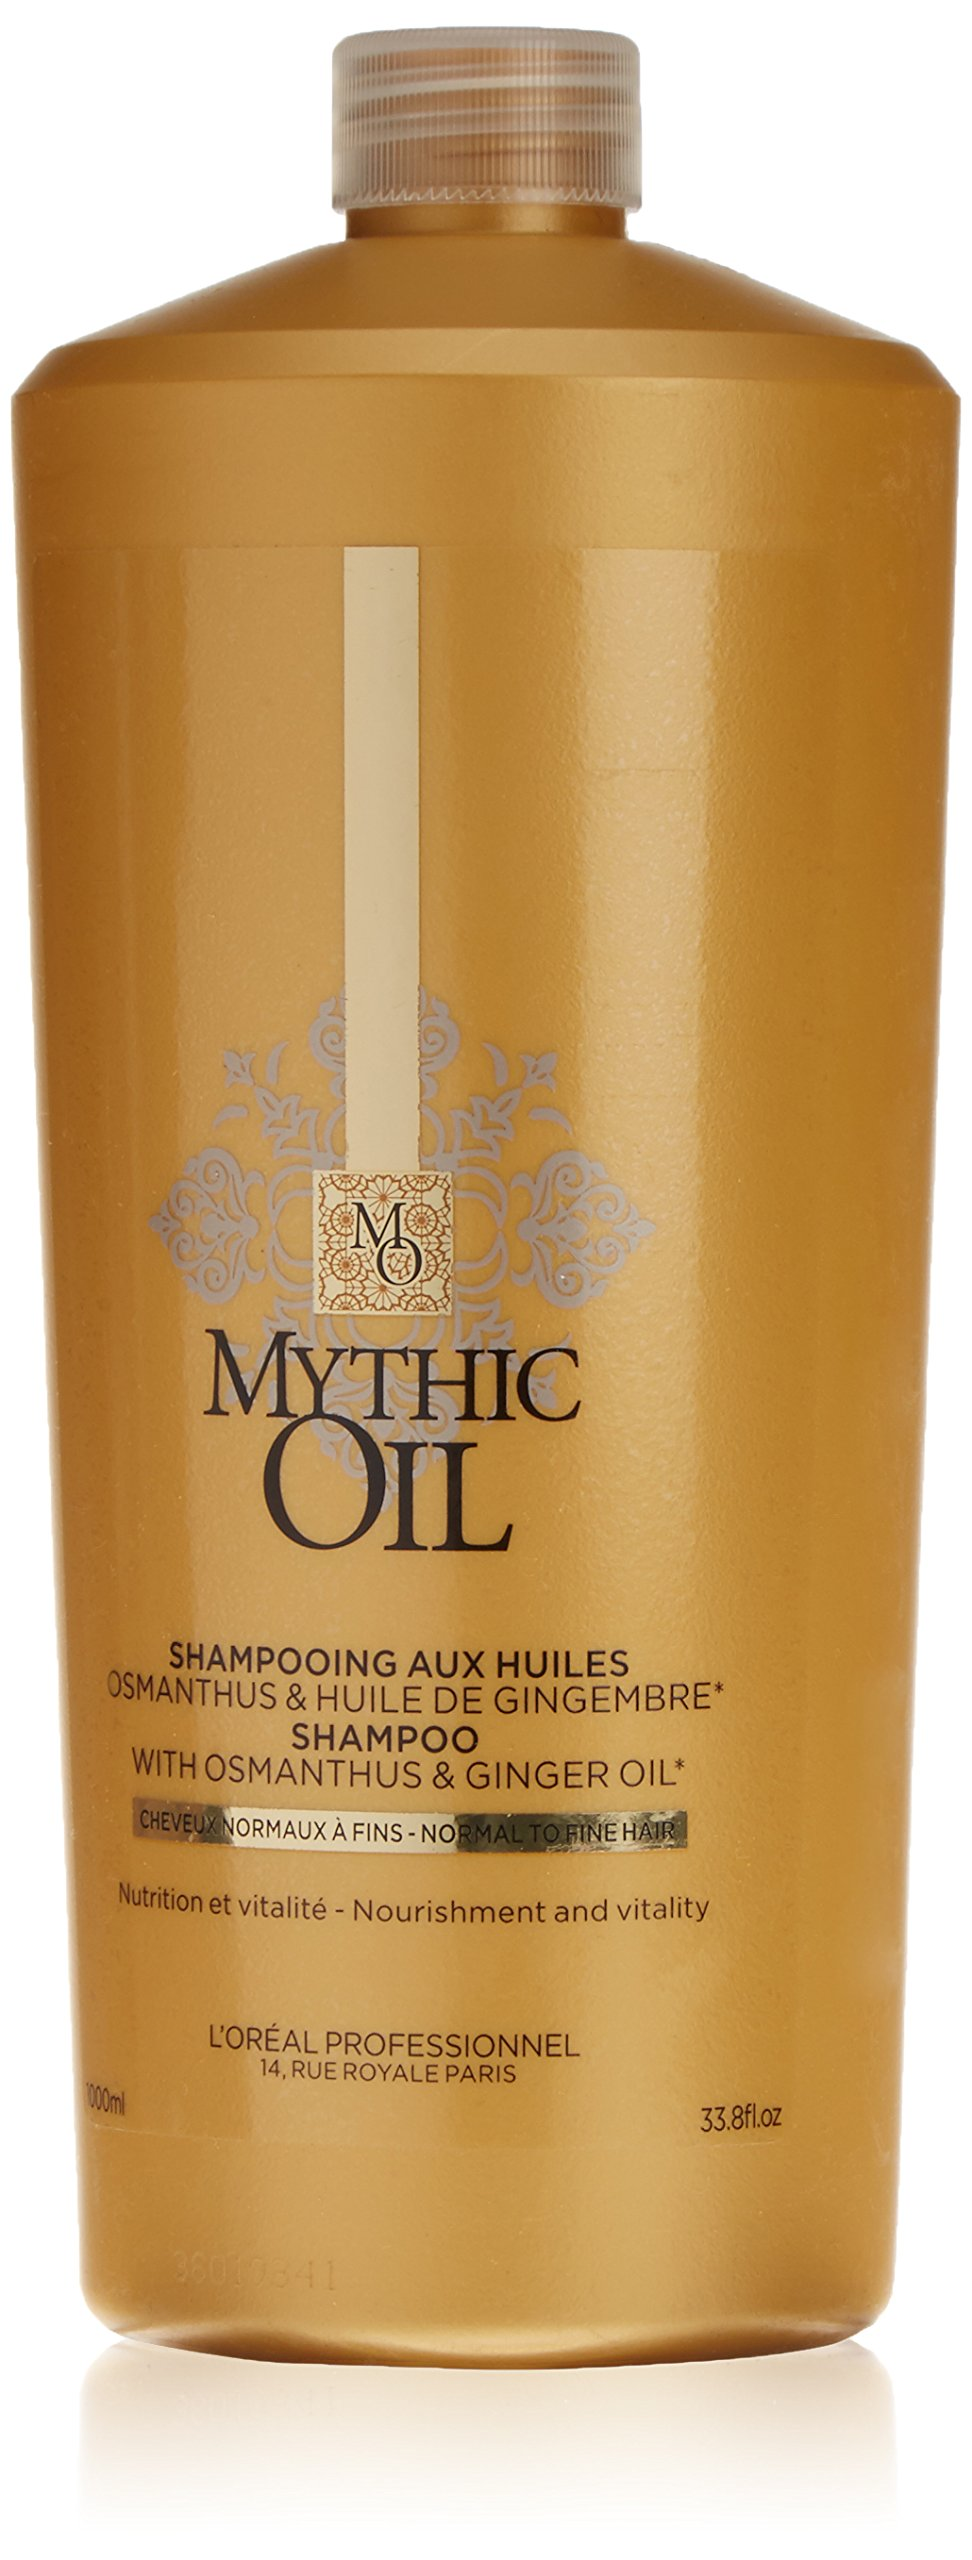 L'Oreal Professional Mythic Shampoo with Osmanthus and Ginger Oil, 33.8 Ounce